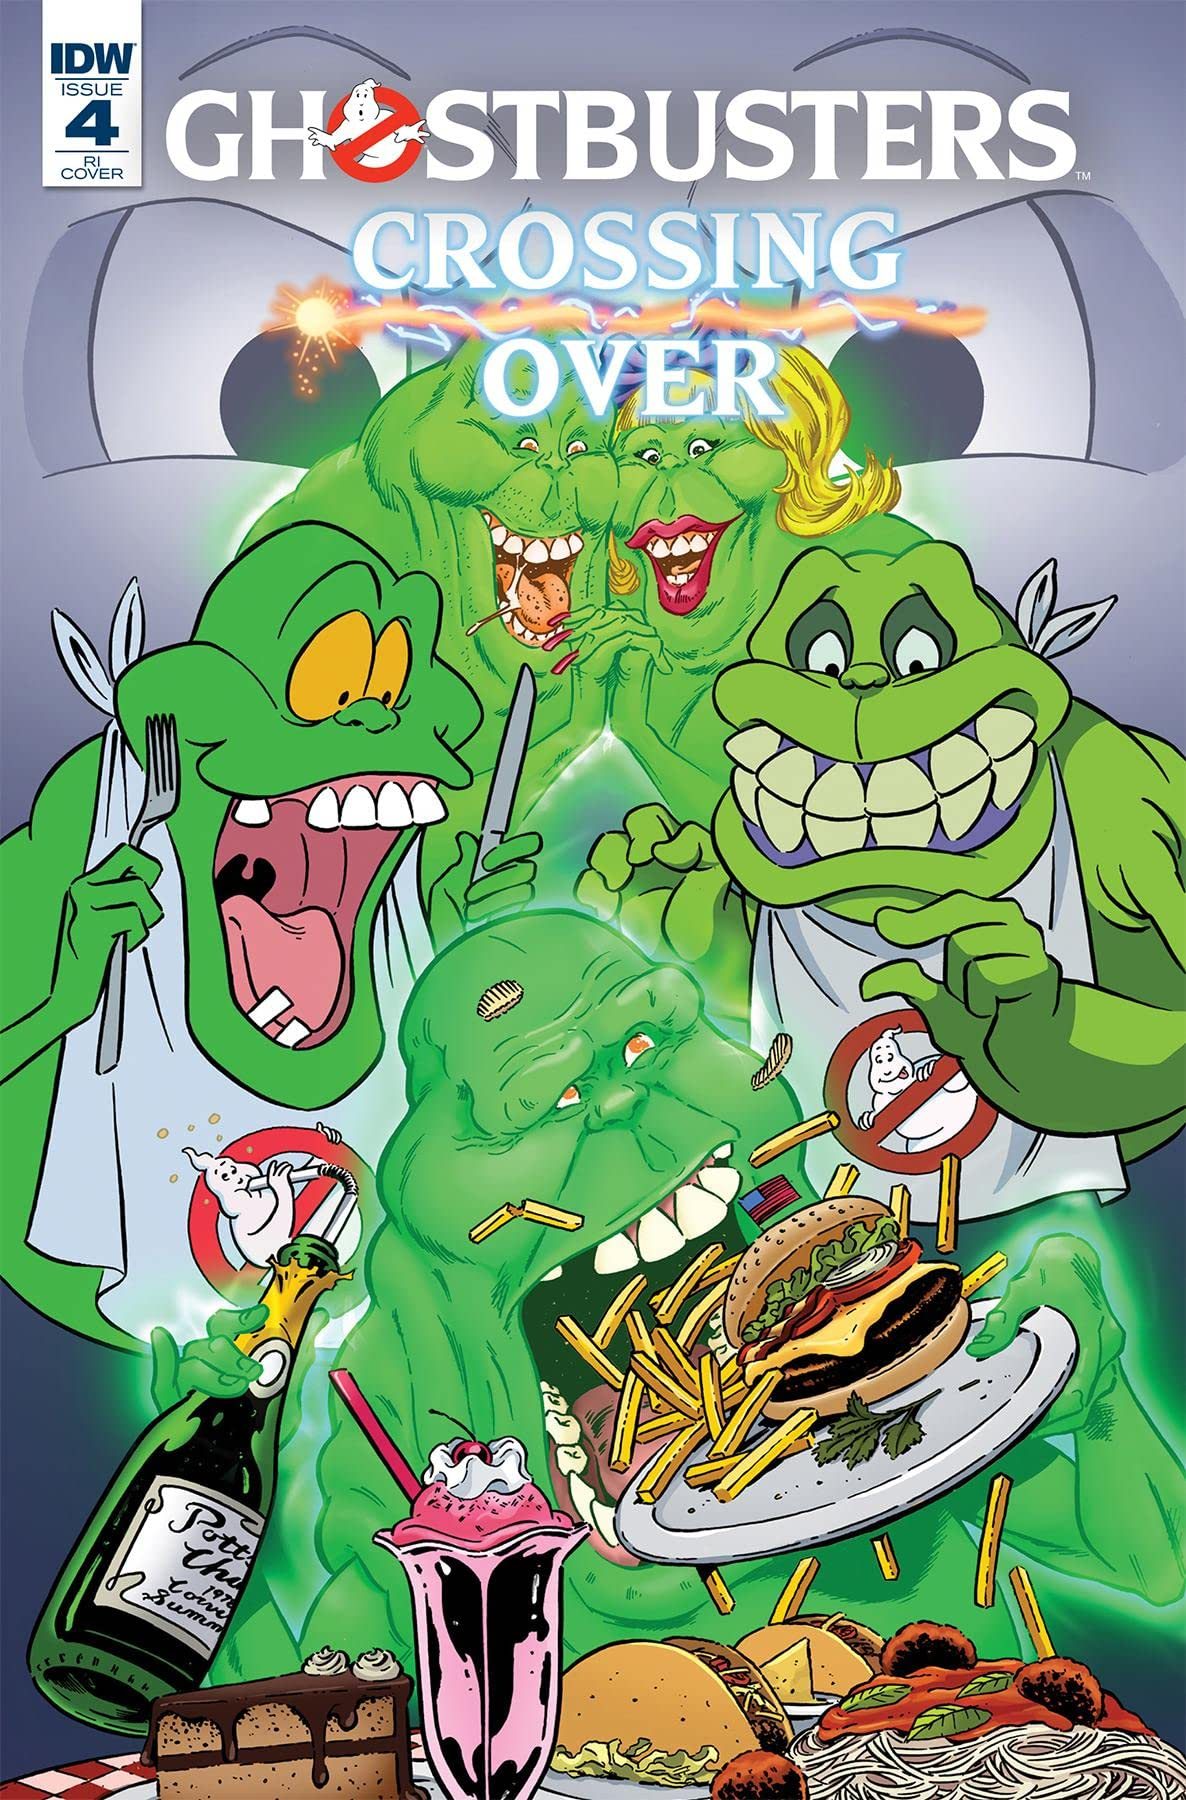 Ghostbusters: Crossing Over #4